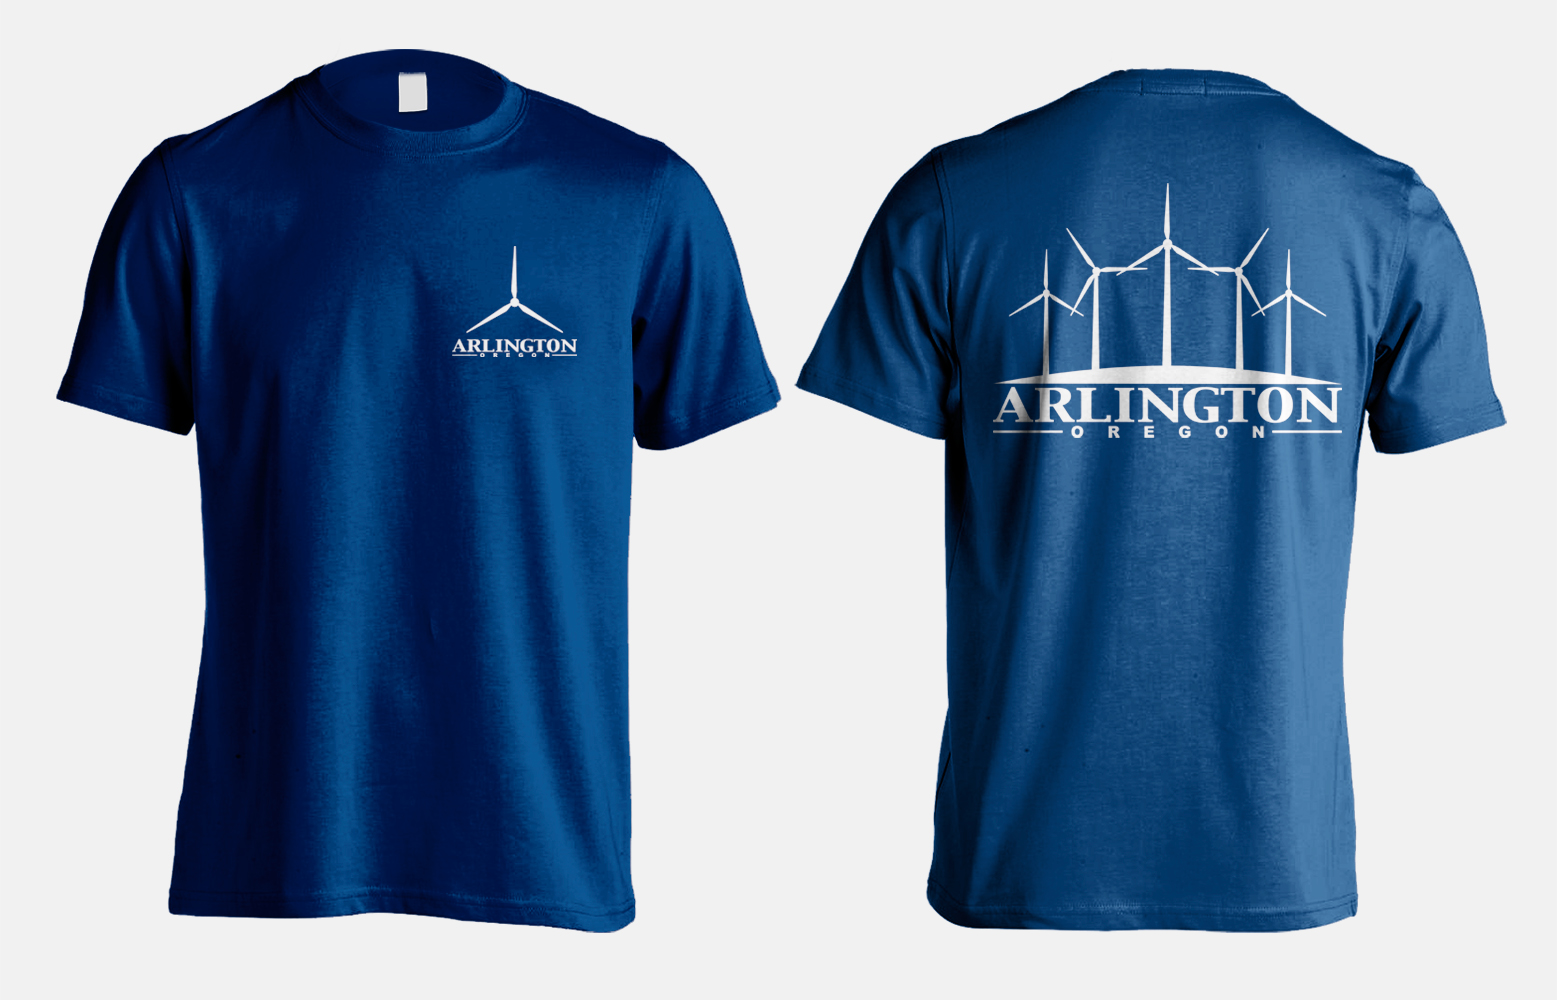 Graphics: Arlington, Oregon T-shirt by Kaseberg Design